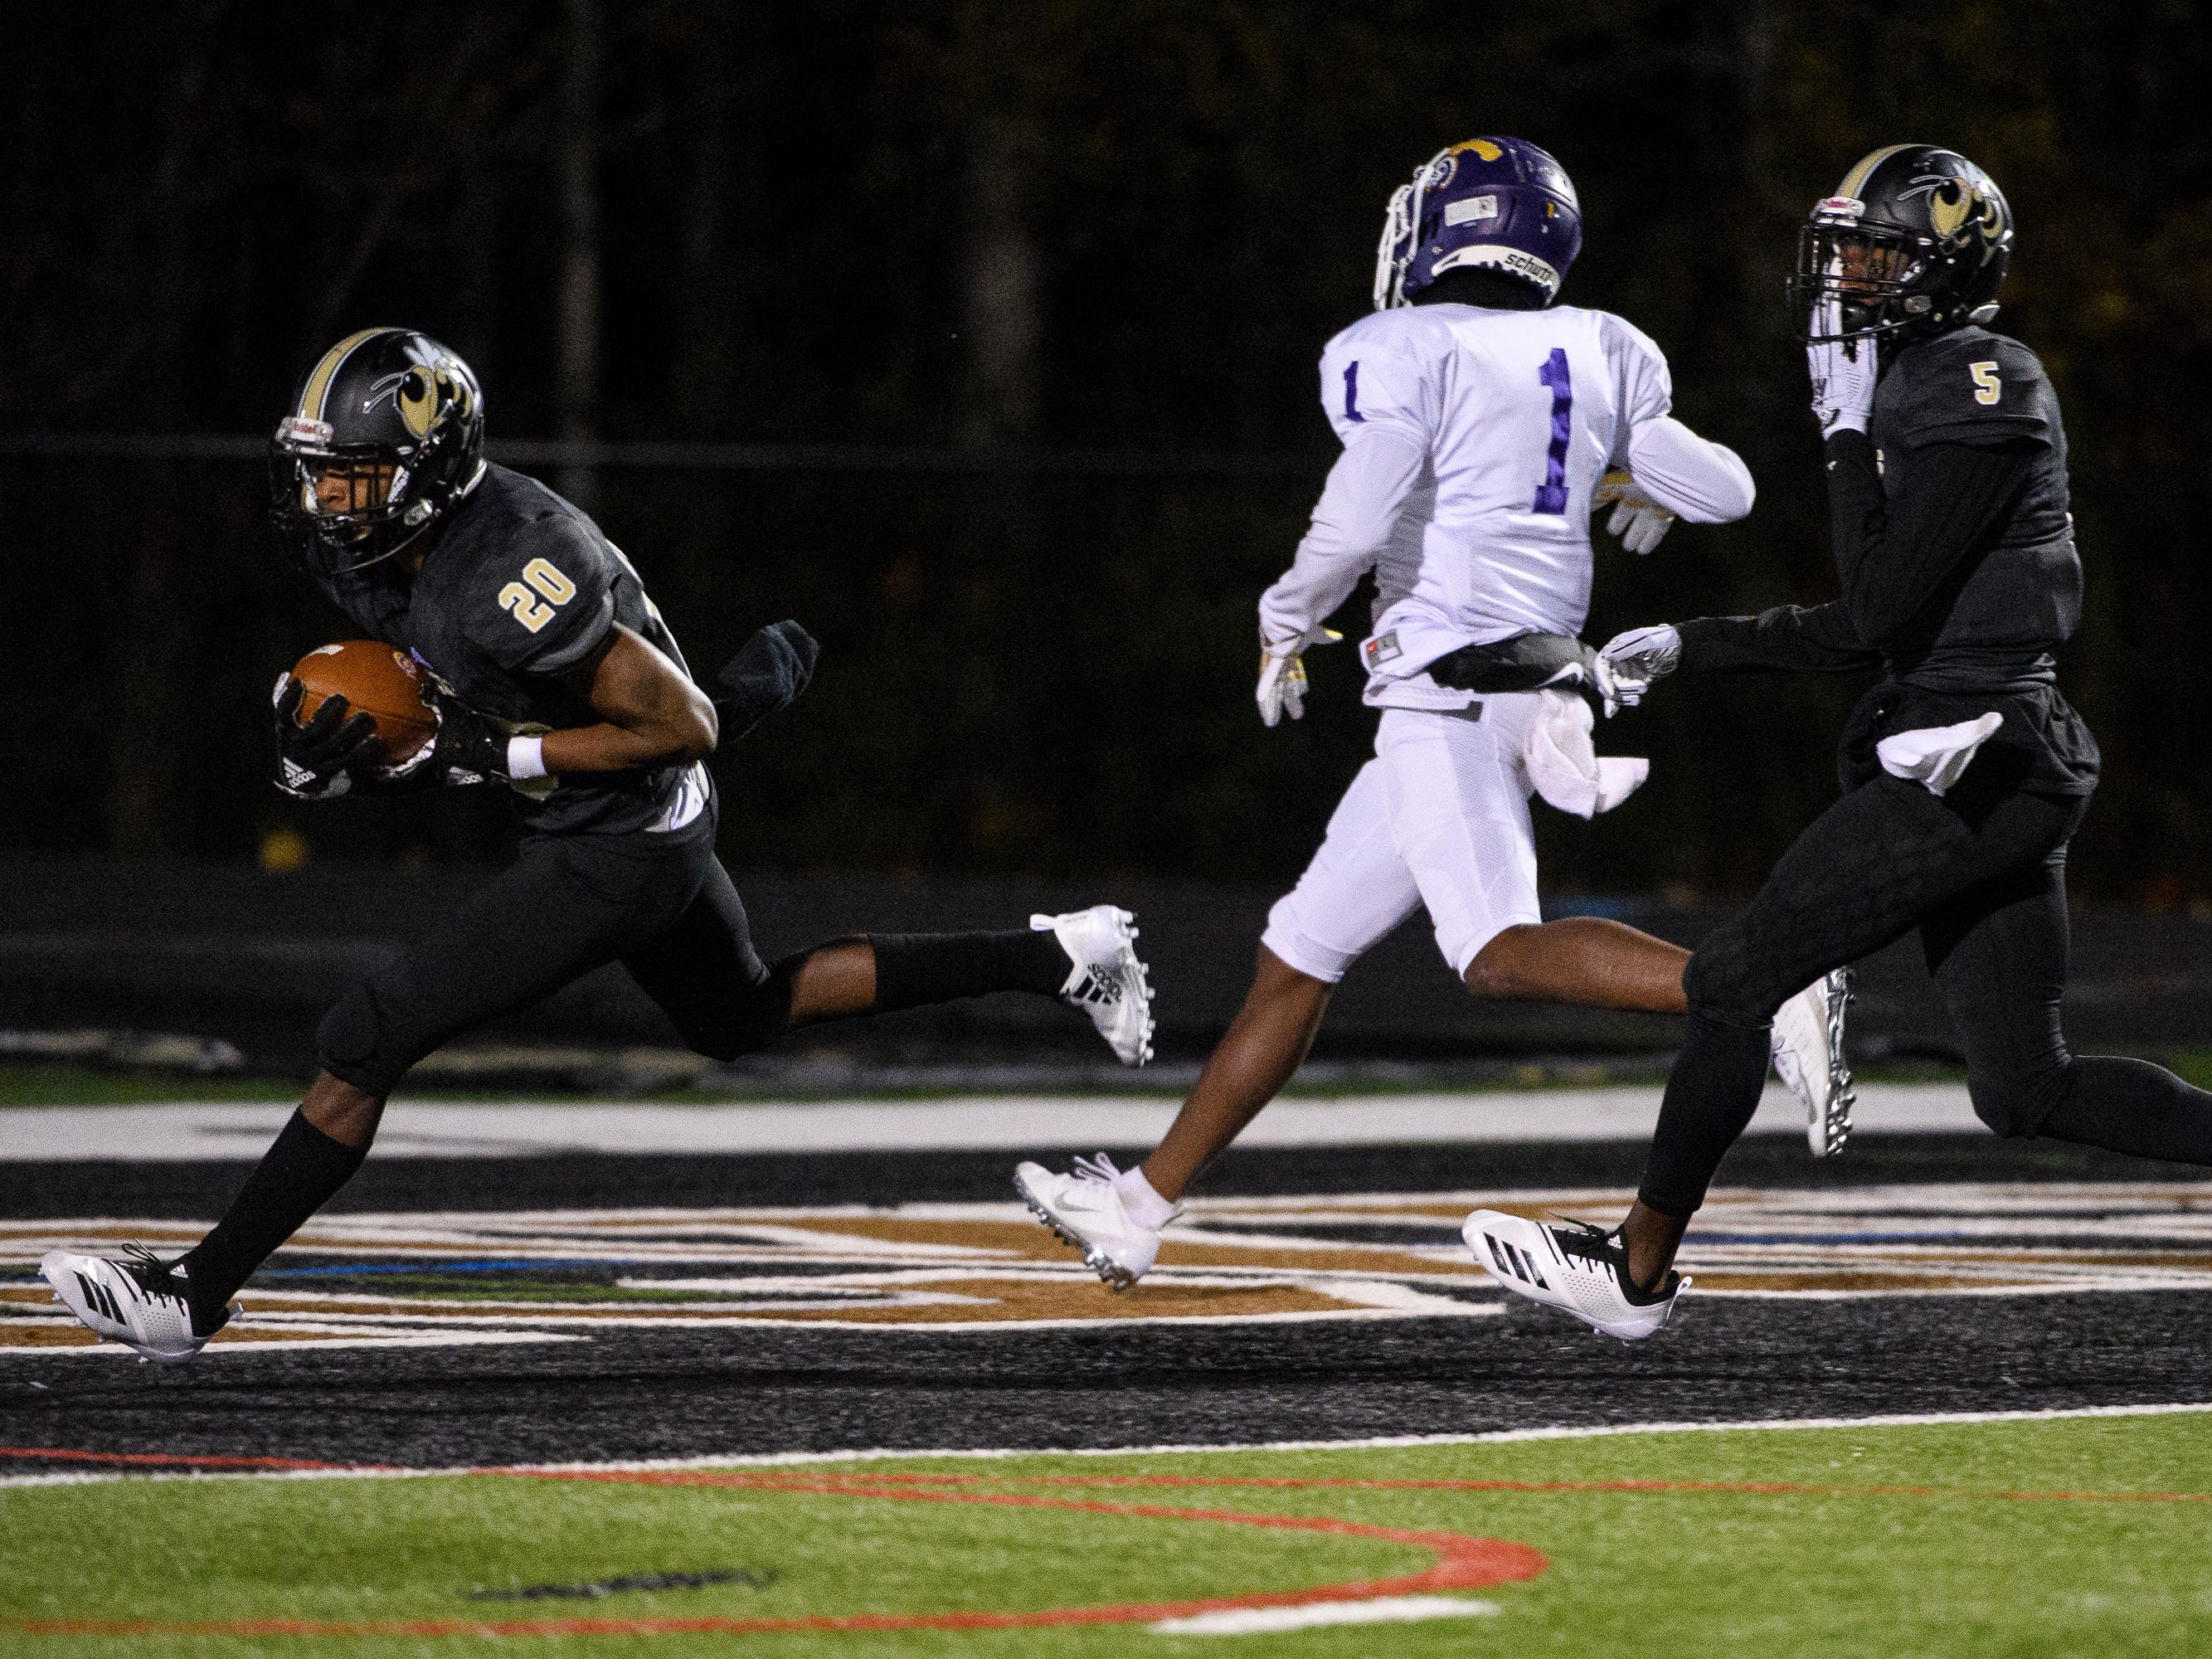 T.L Hanna's Ja'Nike Truesdale (20) runs after he intercepts a pass meant for Northwestern's Jamario Holley (1) on Friday, Nov. 16, 2018.